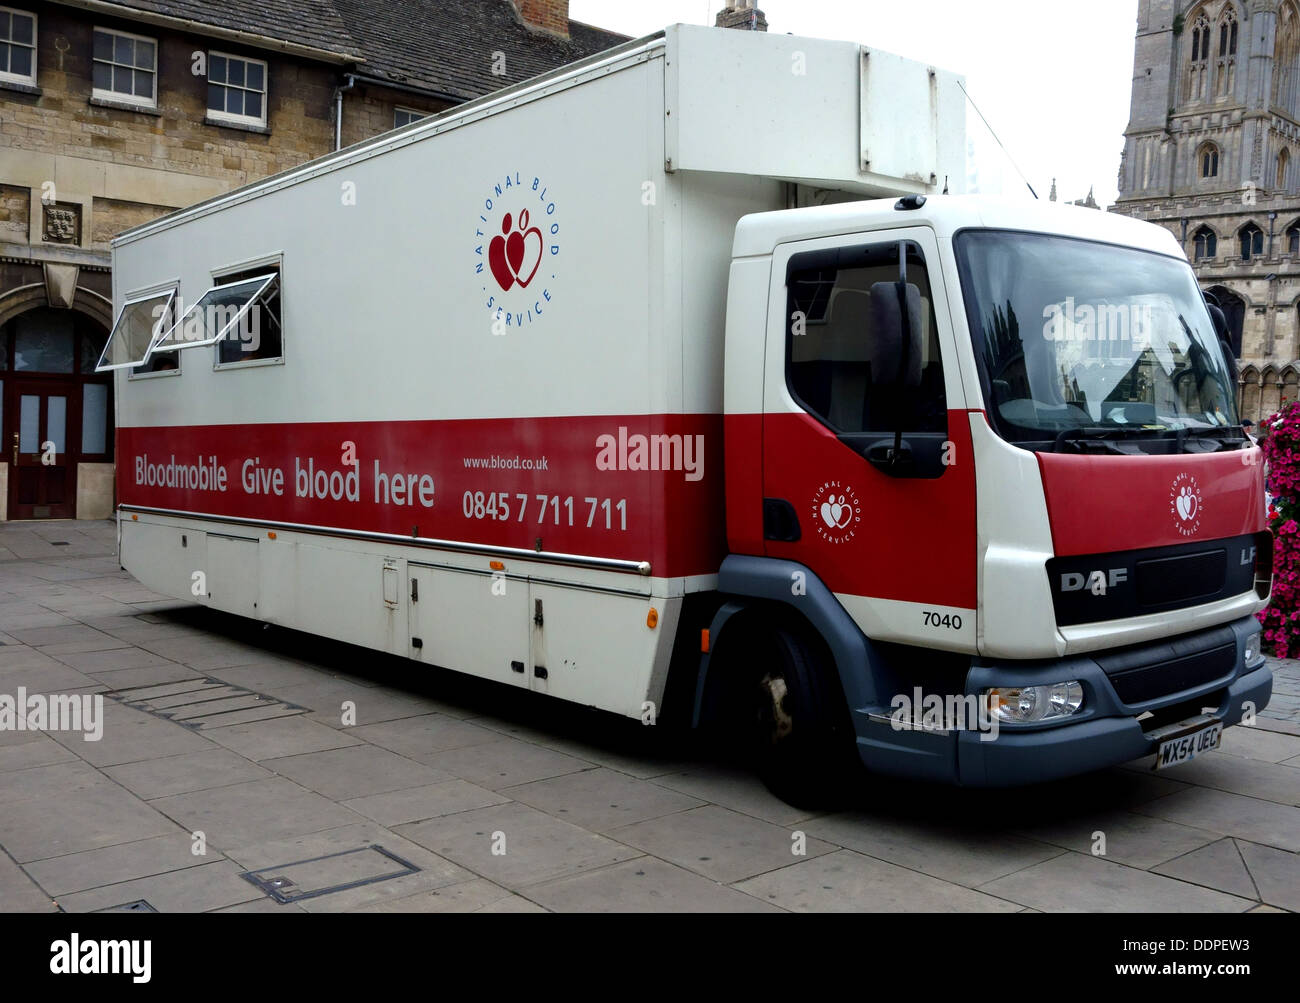 Mobile blood donation unit parked in Stamford, England - Stock Image